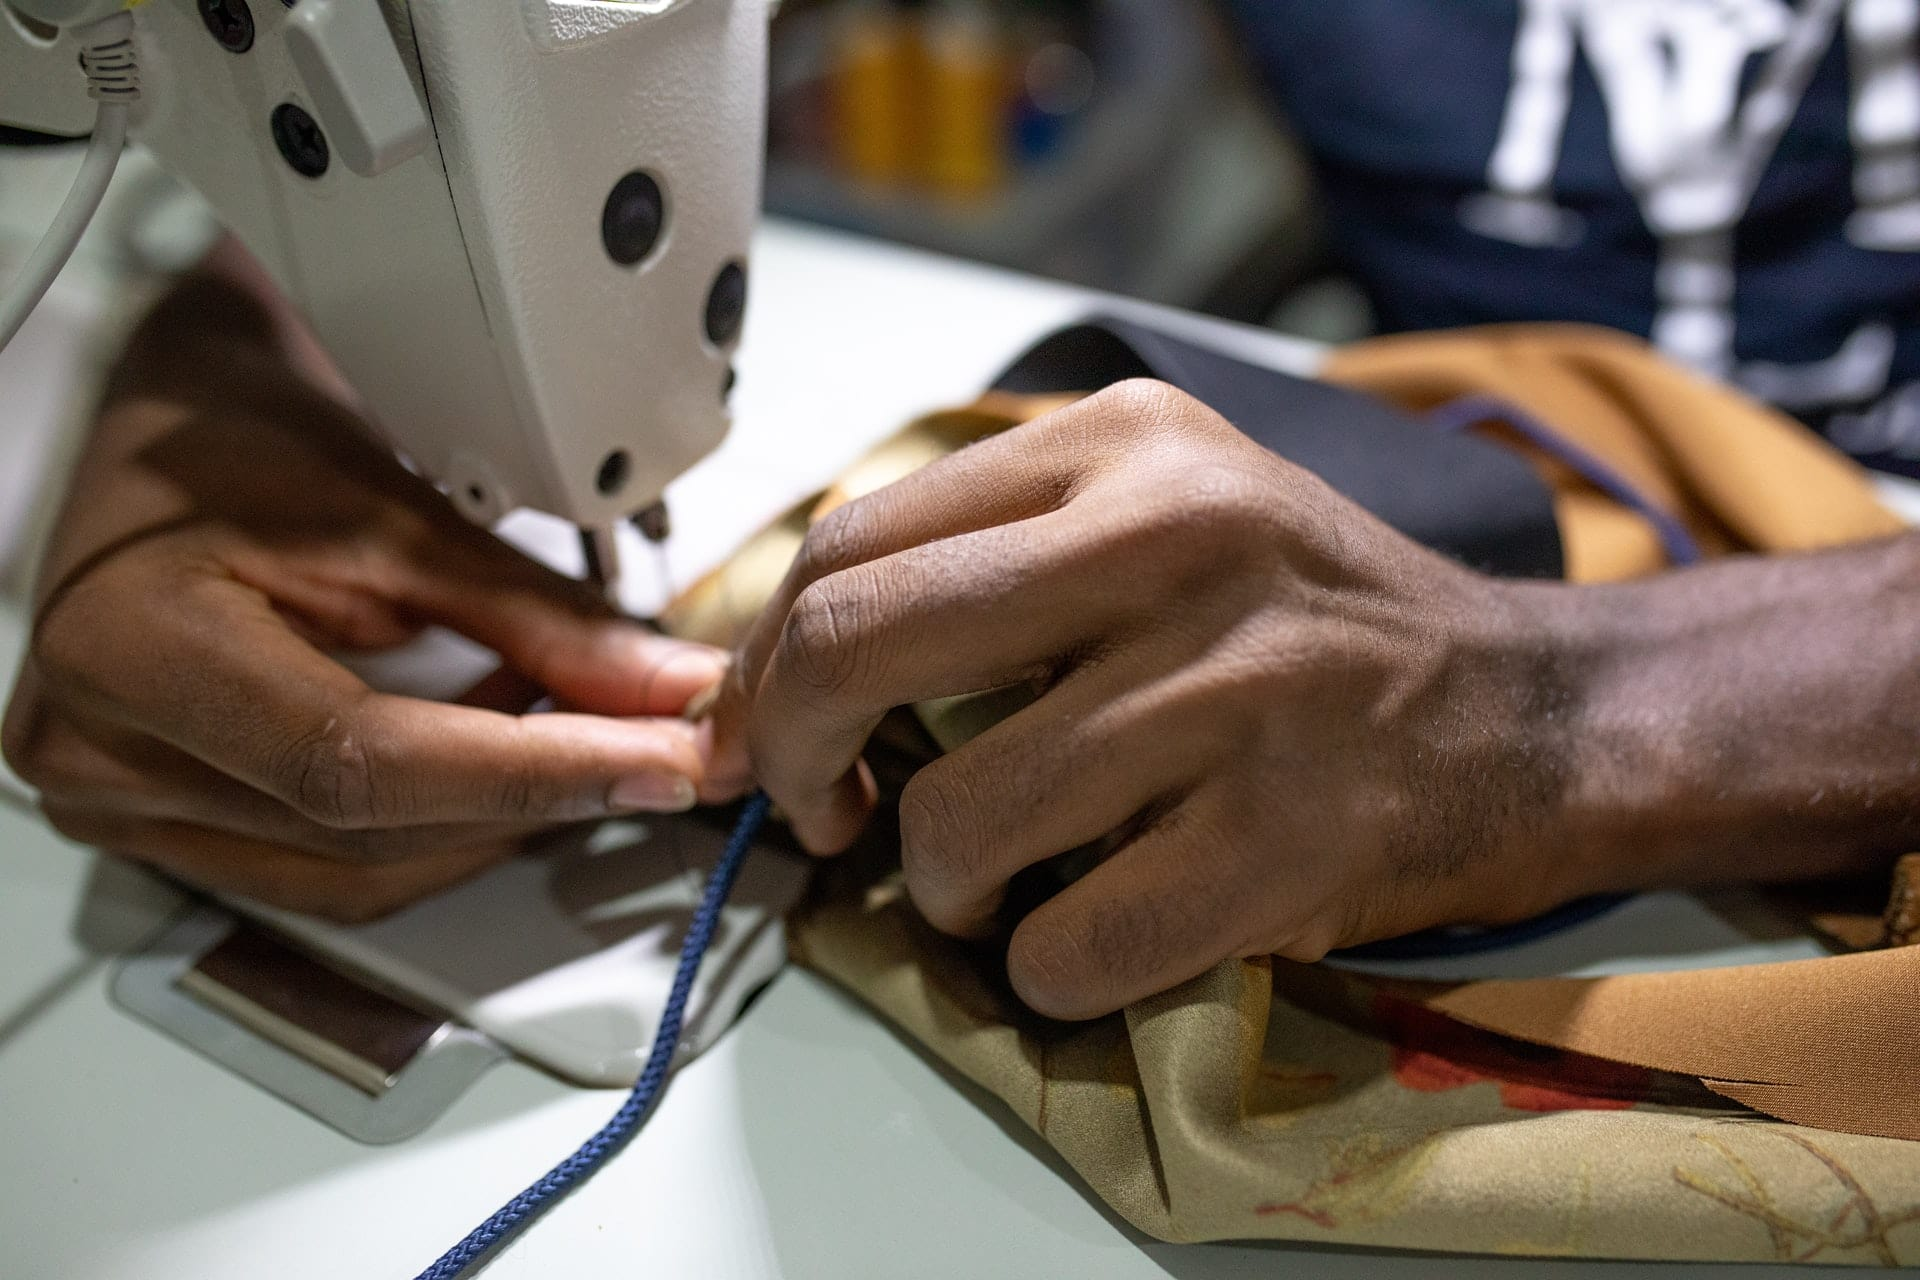 Does quilting require a sewing machine?